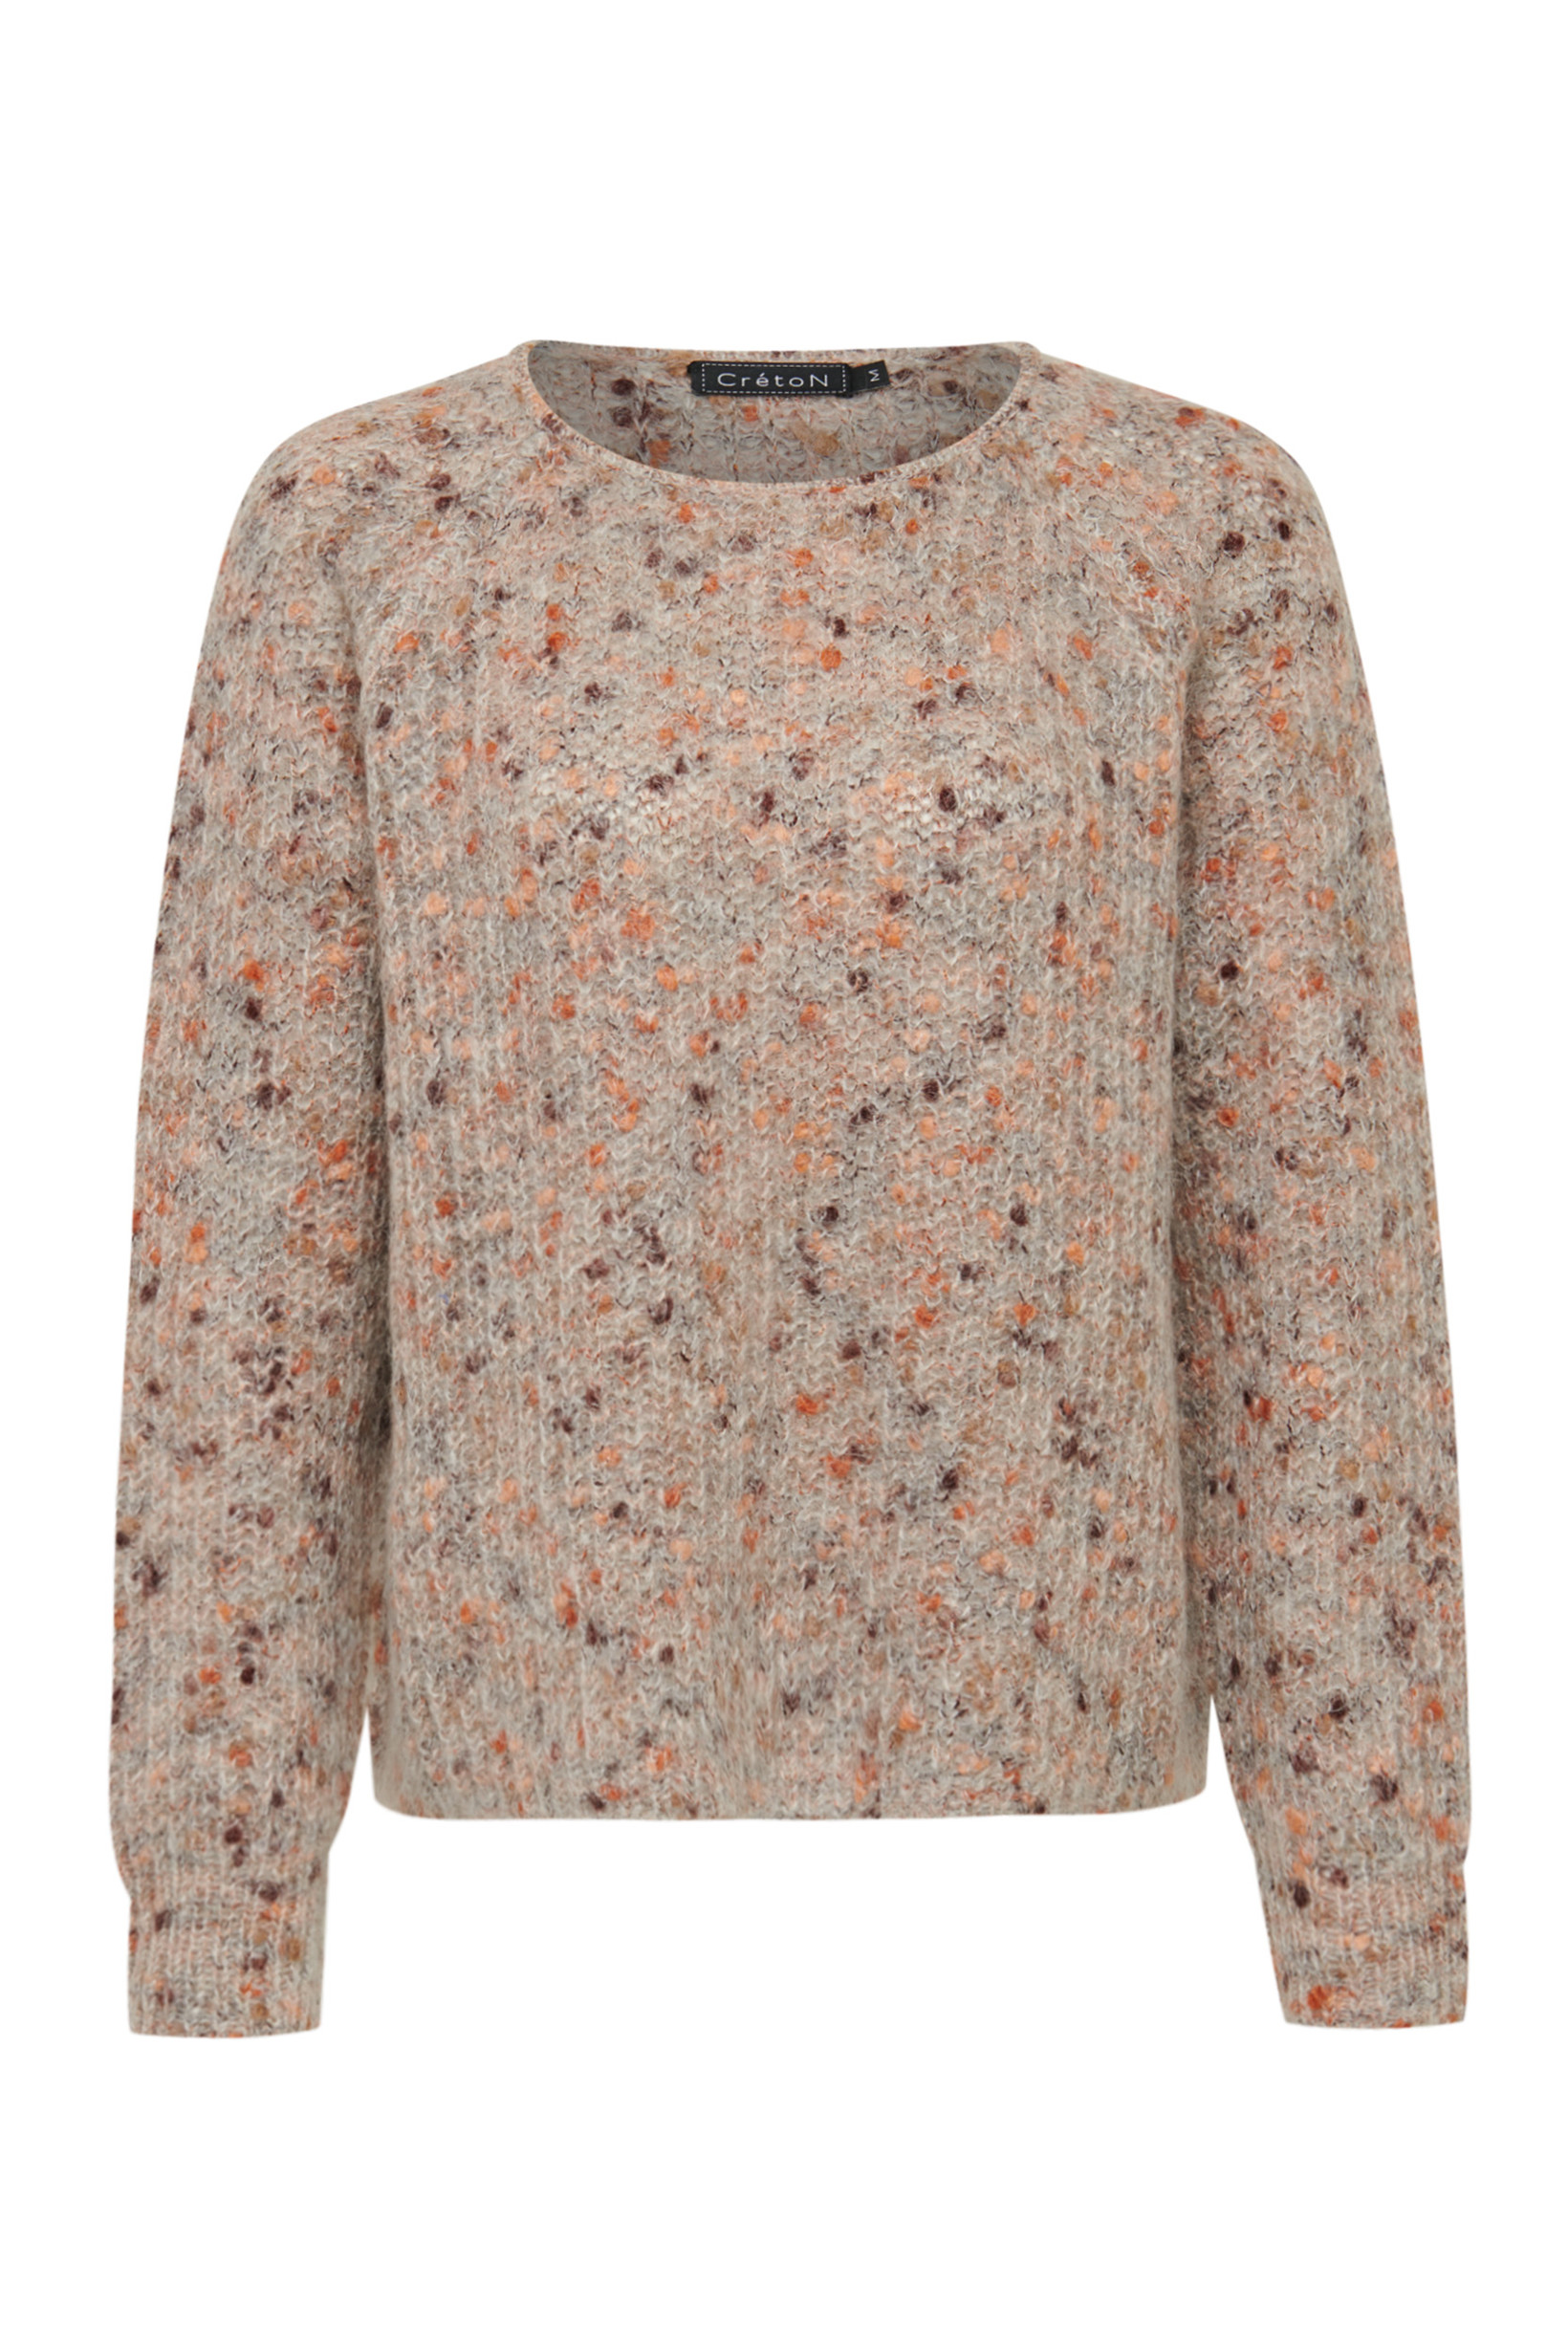 Image of   A-Zoey Sweater i 2 farver - Peach